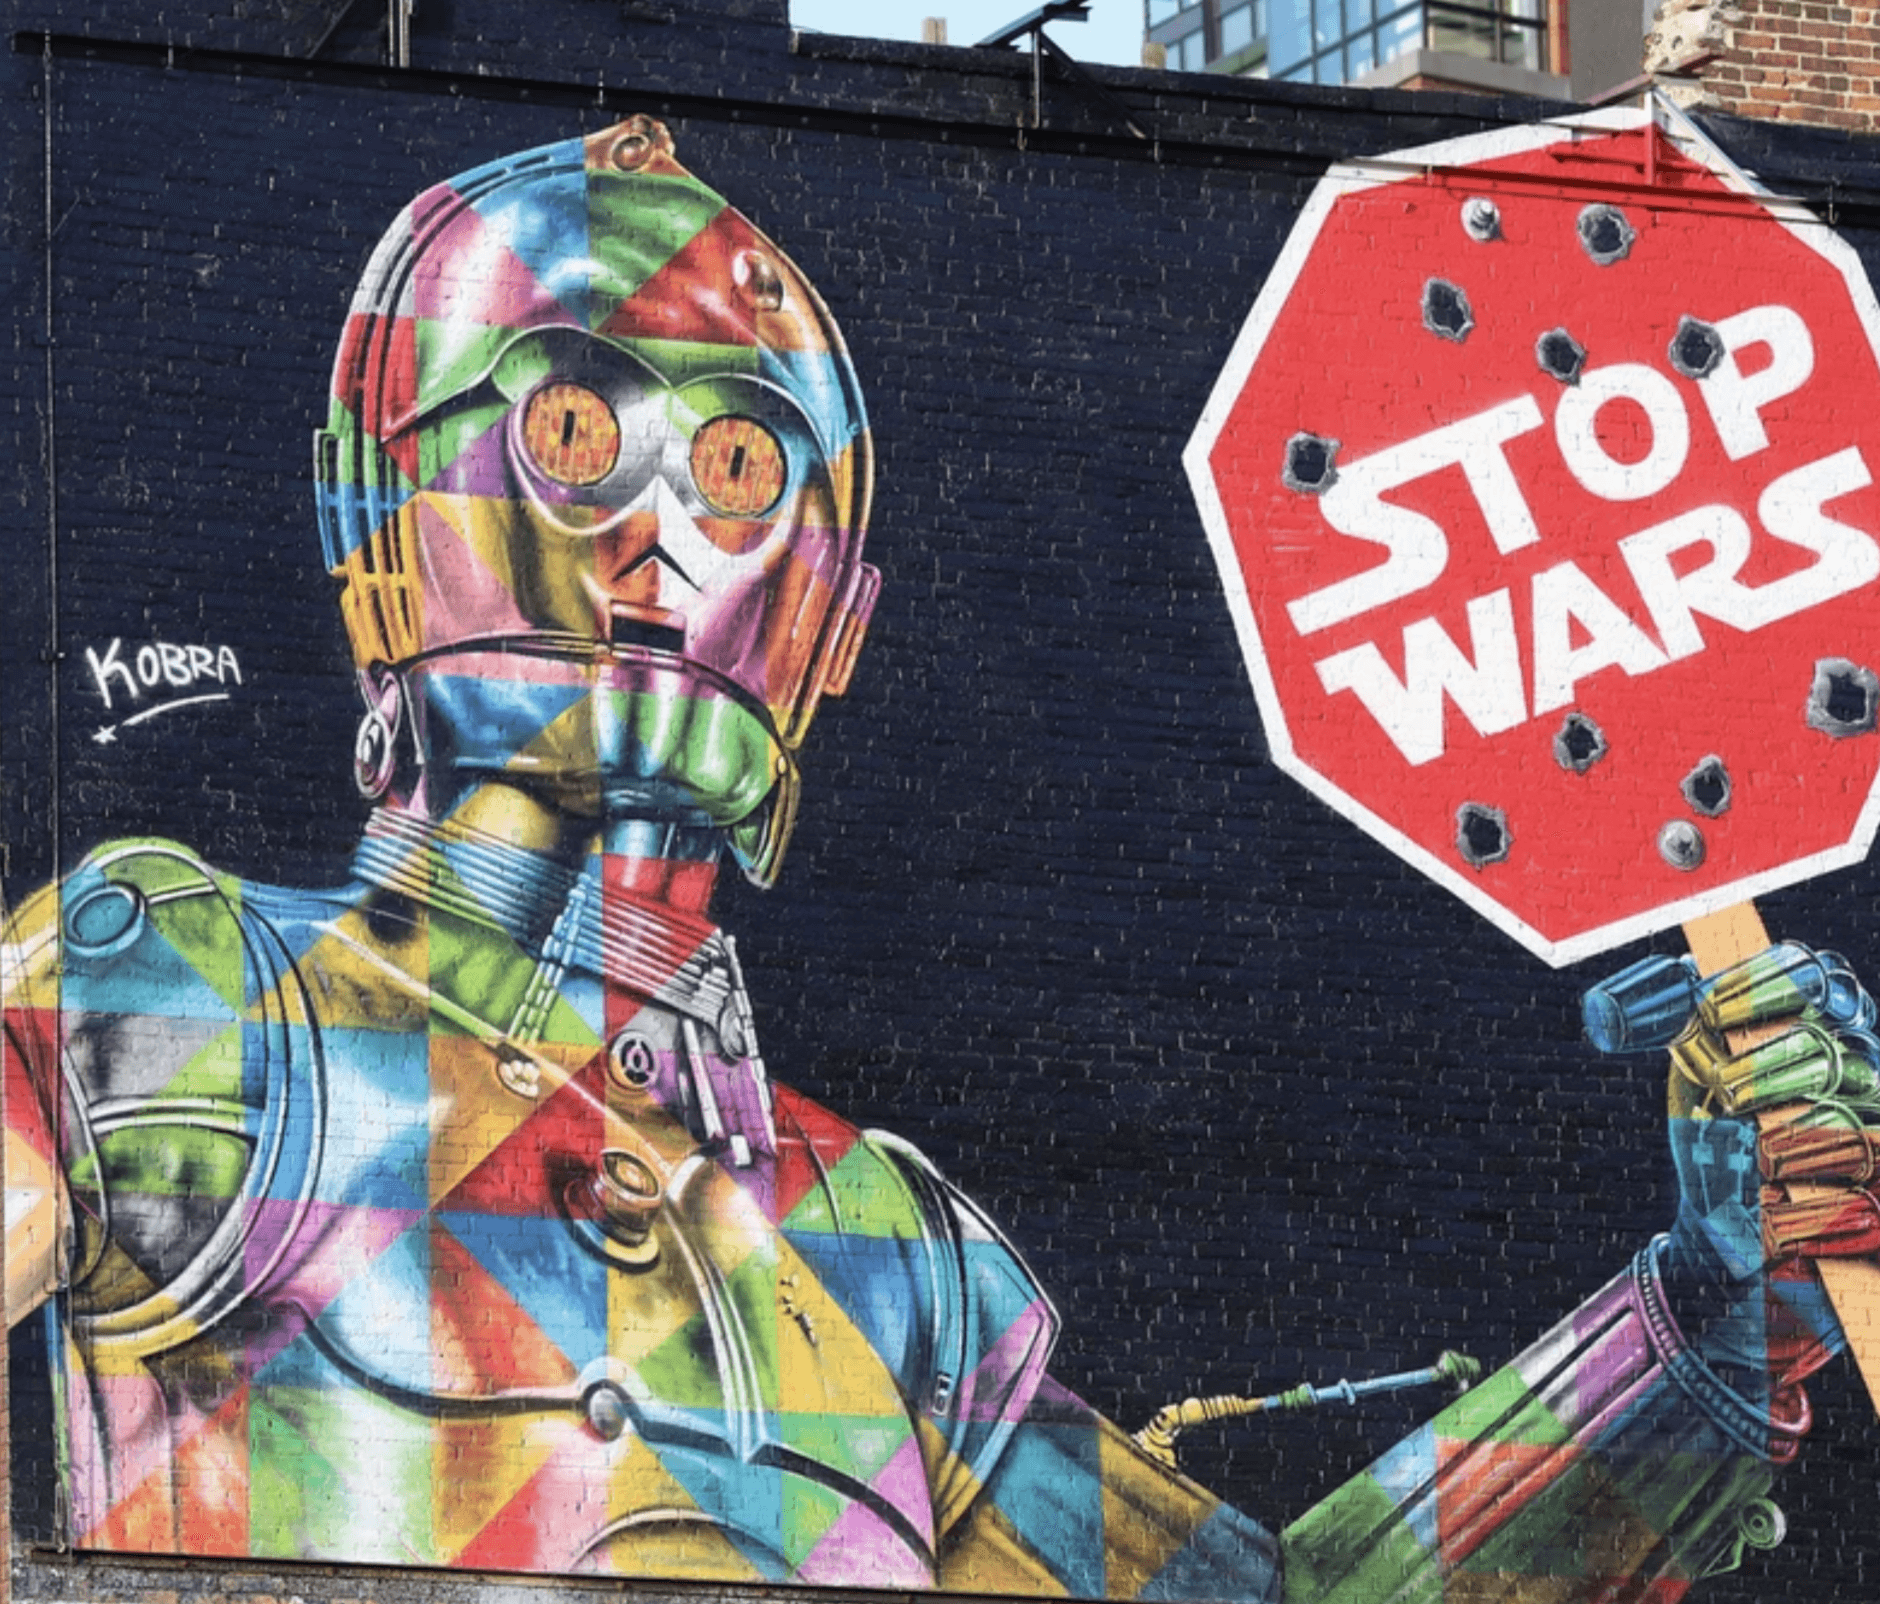 Kobra Mural Grafitti New York Stop Wars